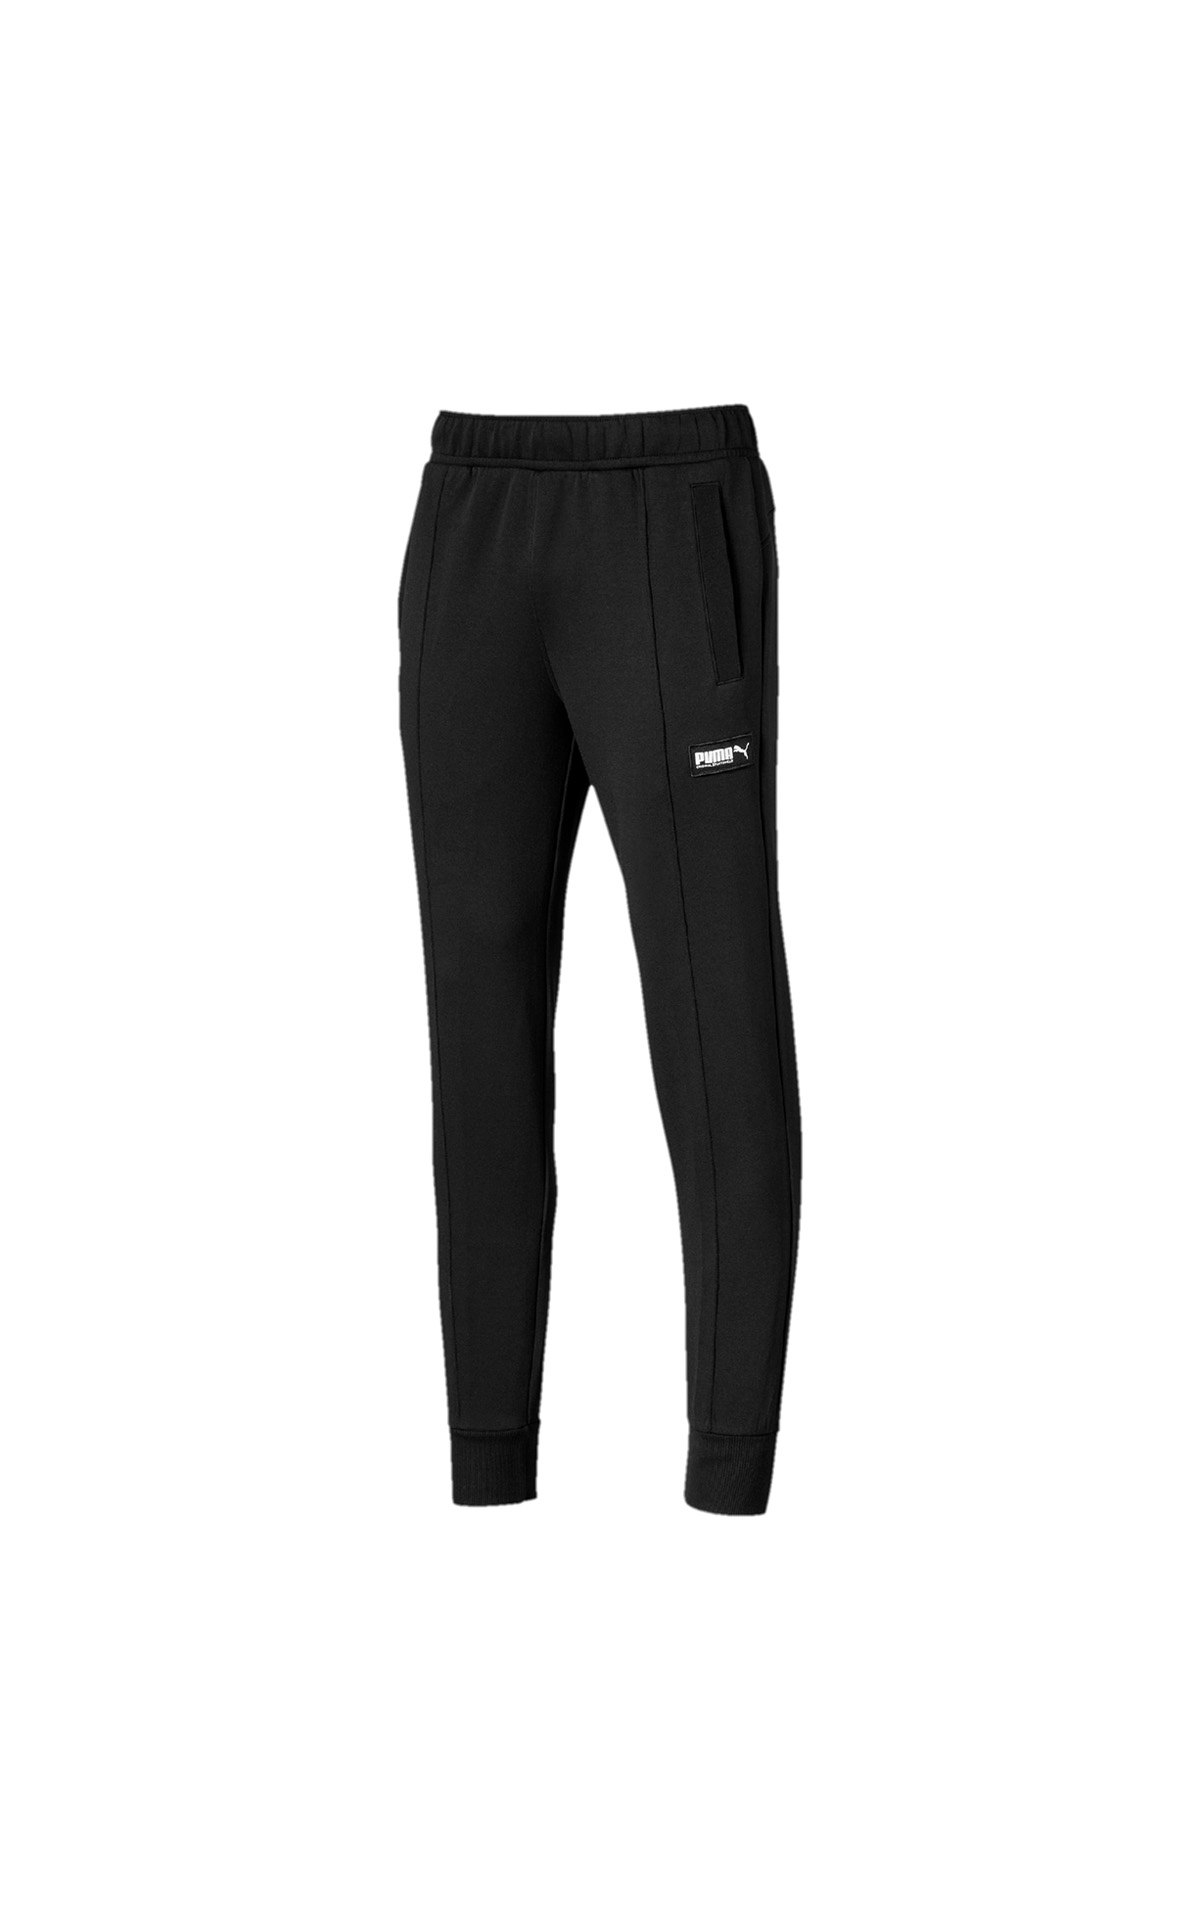 PUMA fusion pants at The Bicester Village Shopping Collection